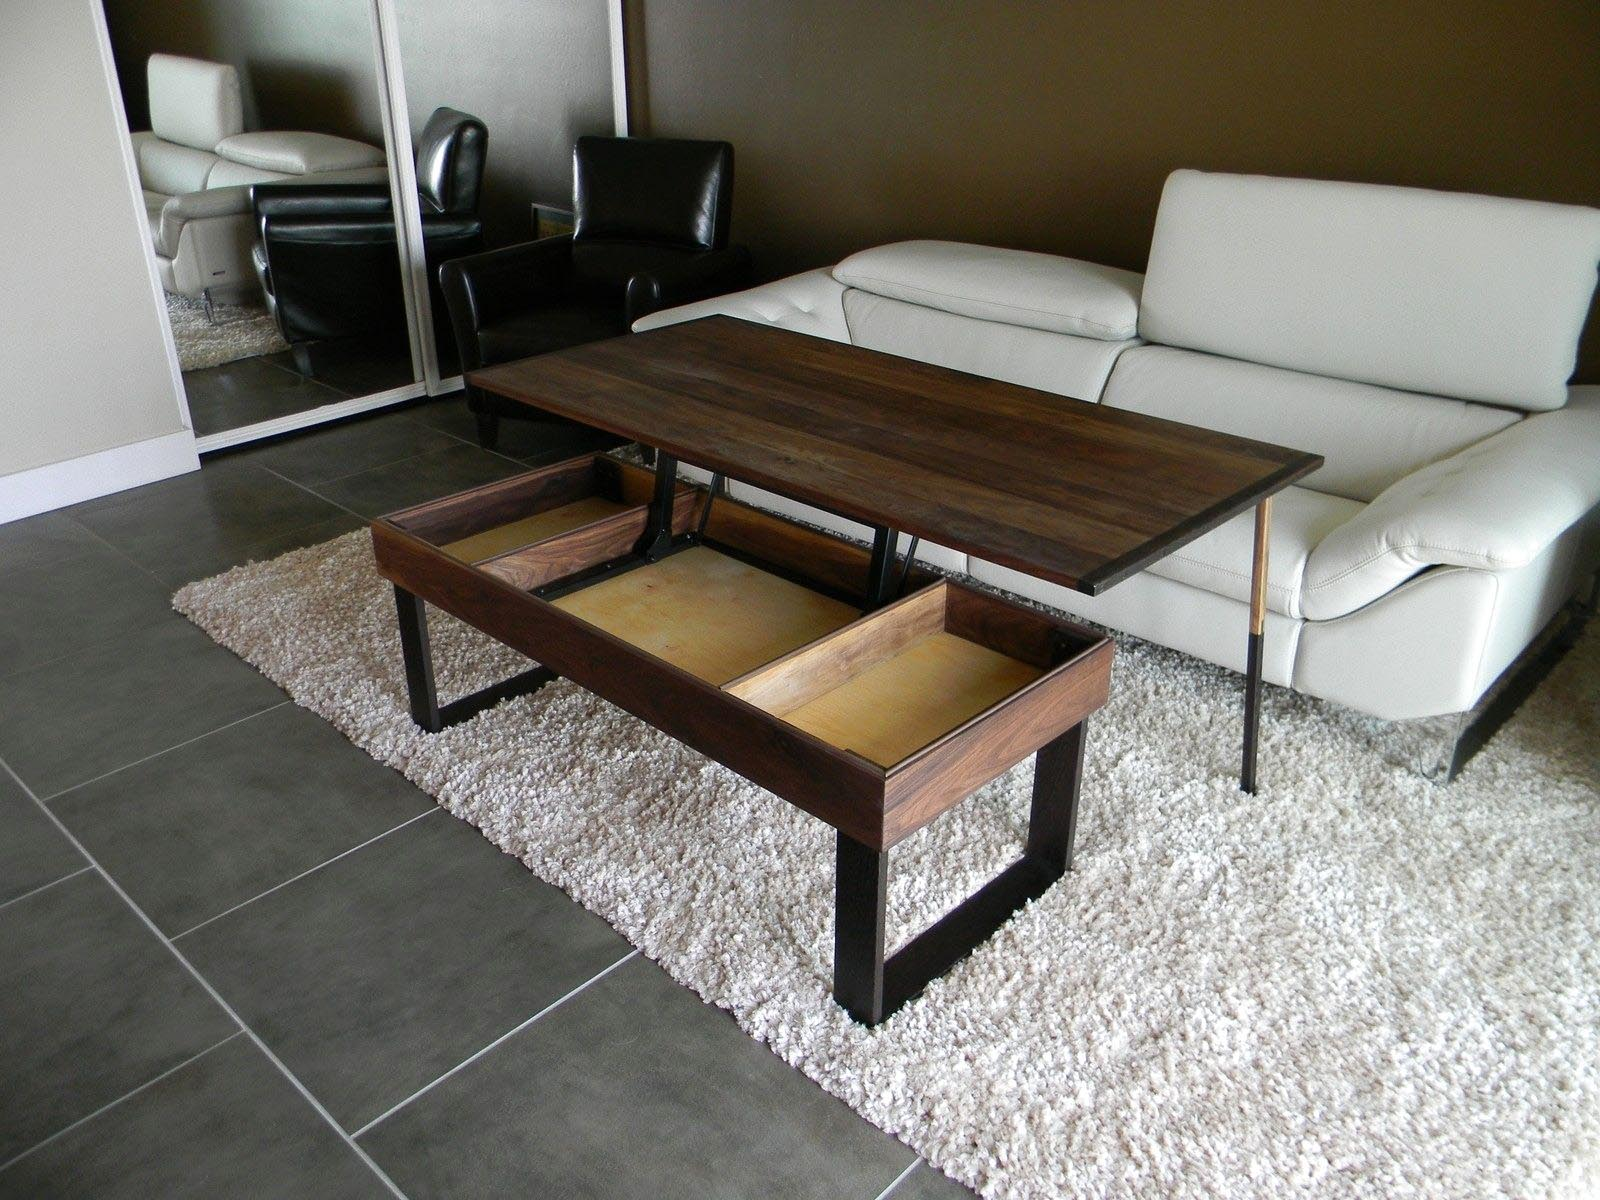 convertible coffee table to dining table ikea | coffee table